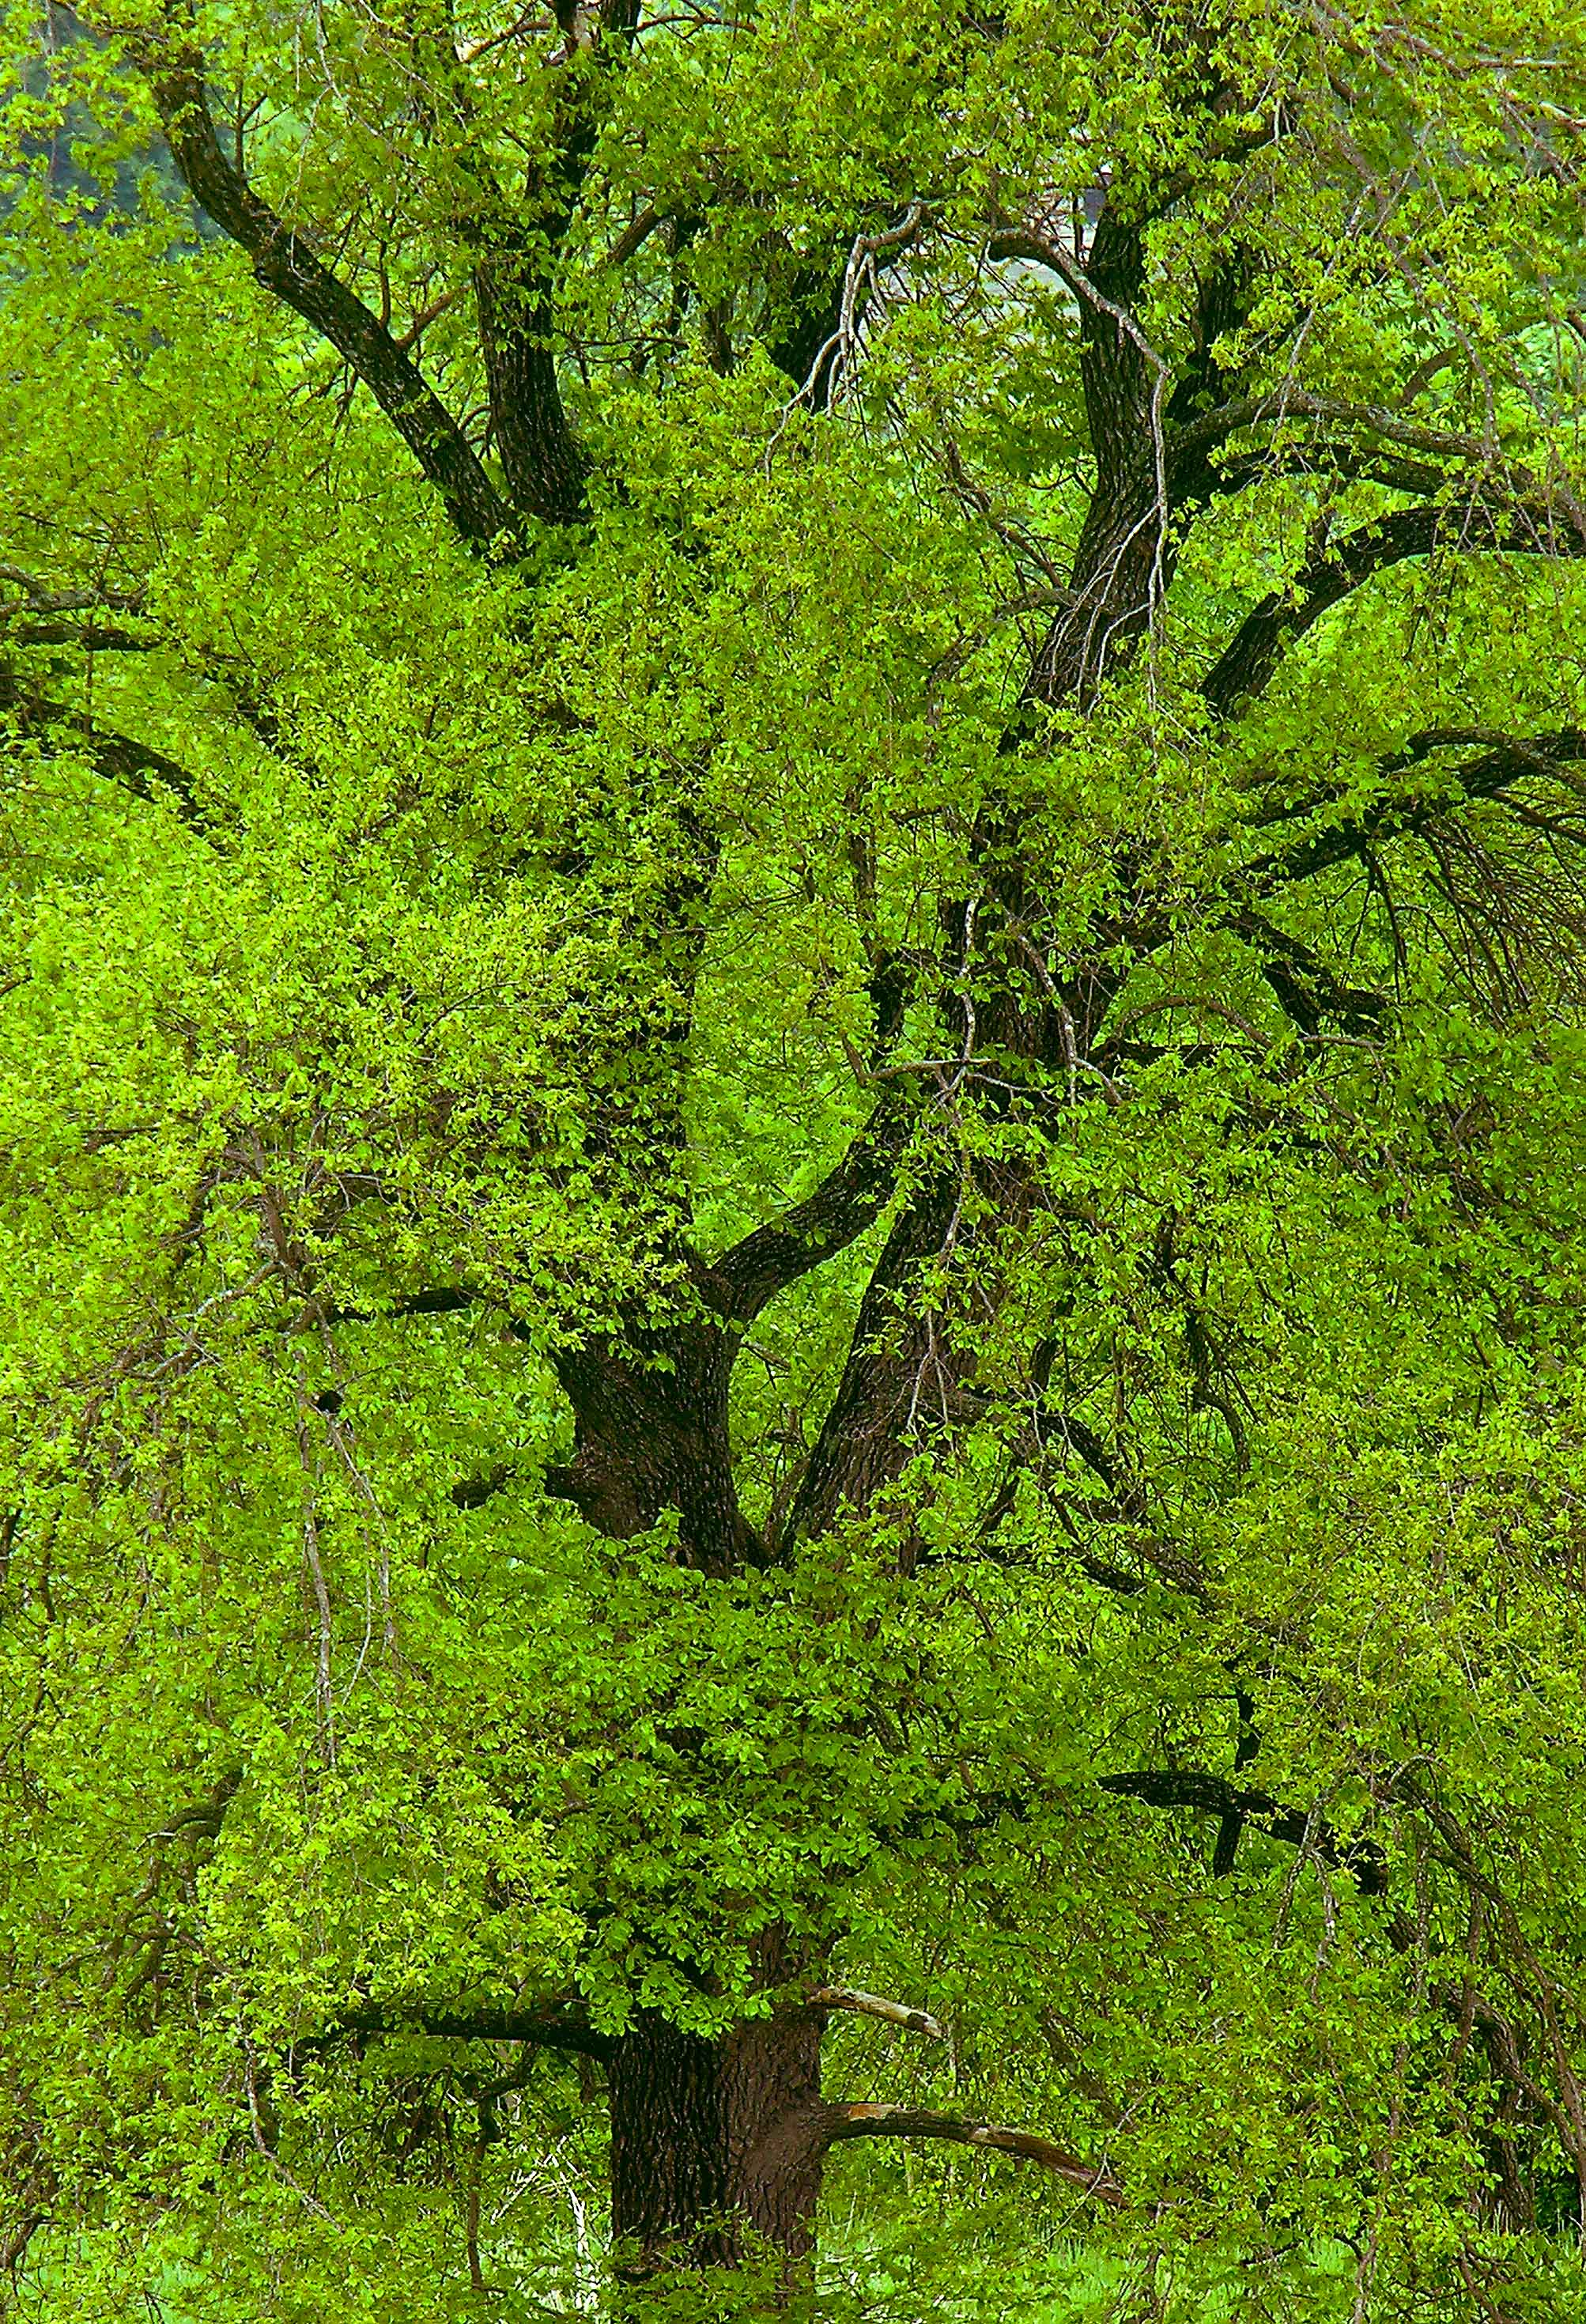 The Greens of Spring